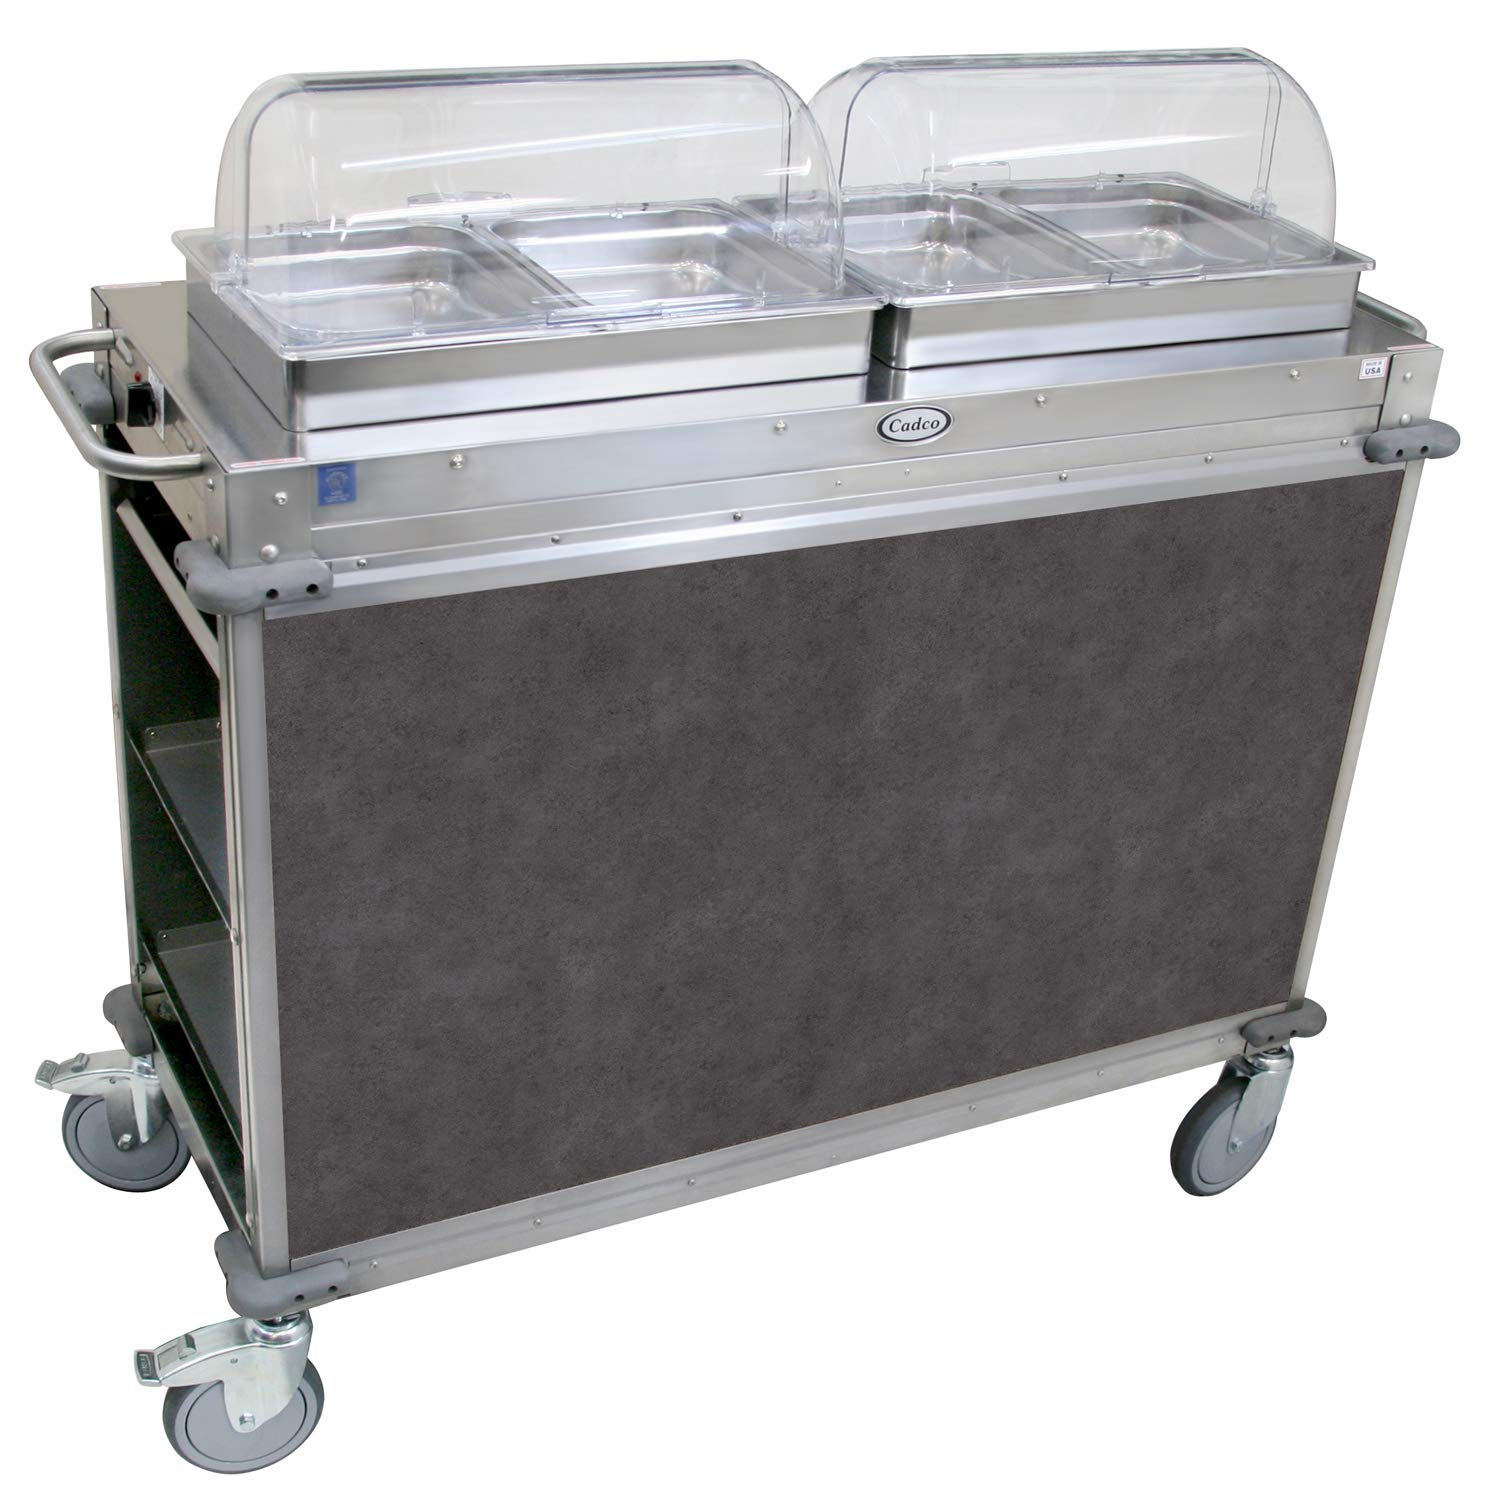 "Mobile Hot Buffet Cart Color: Mission Smoke Grey, Size: 49.5"" H x 52.75"" W x 20.75"" D"